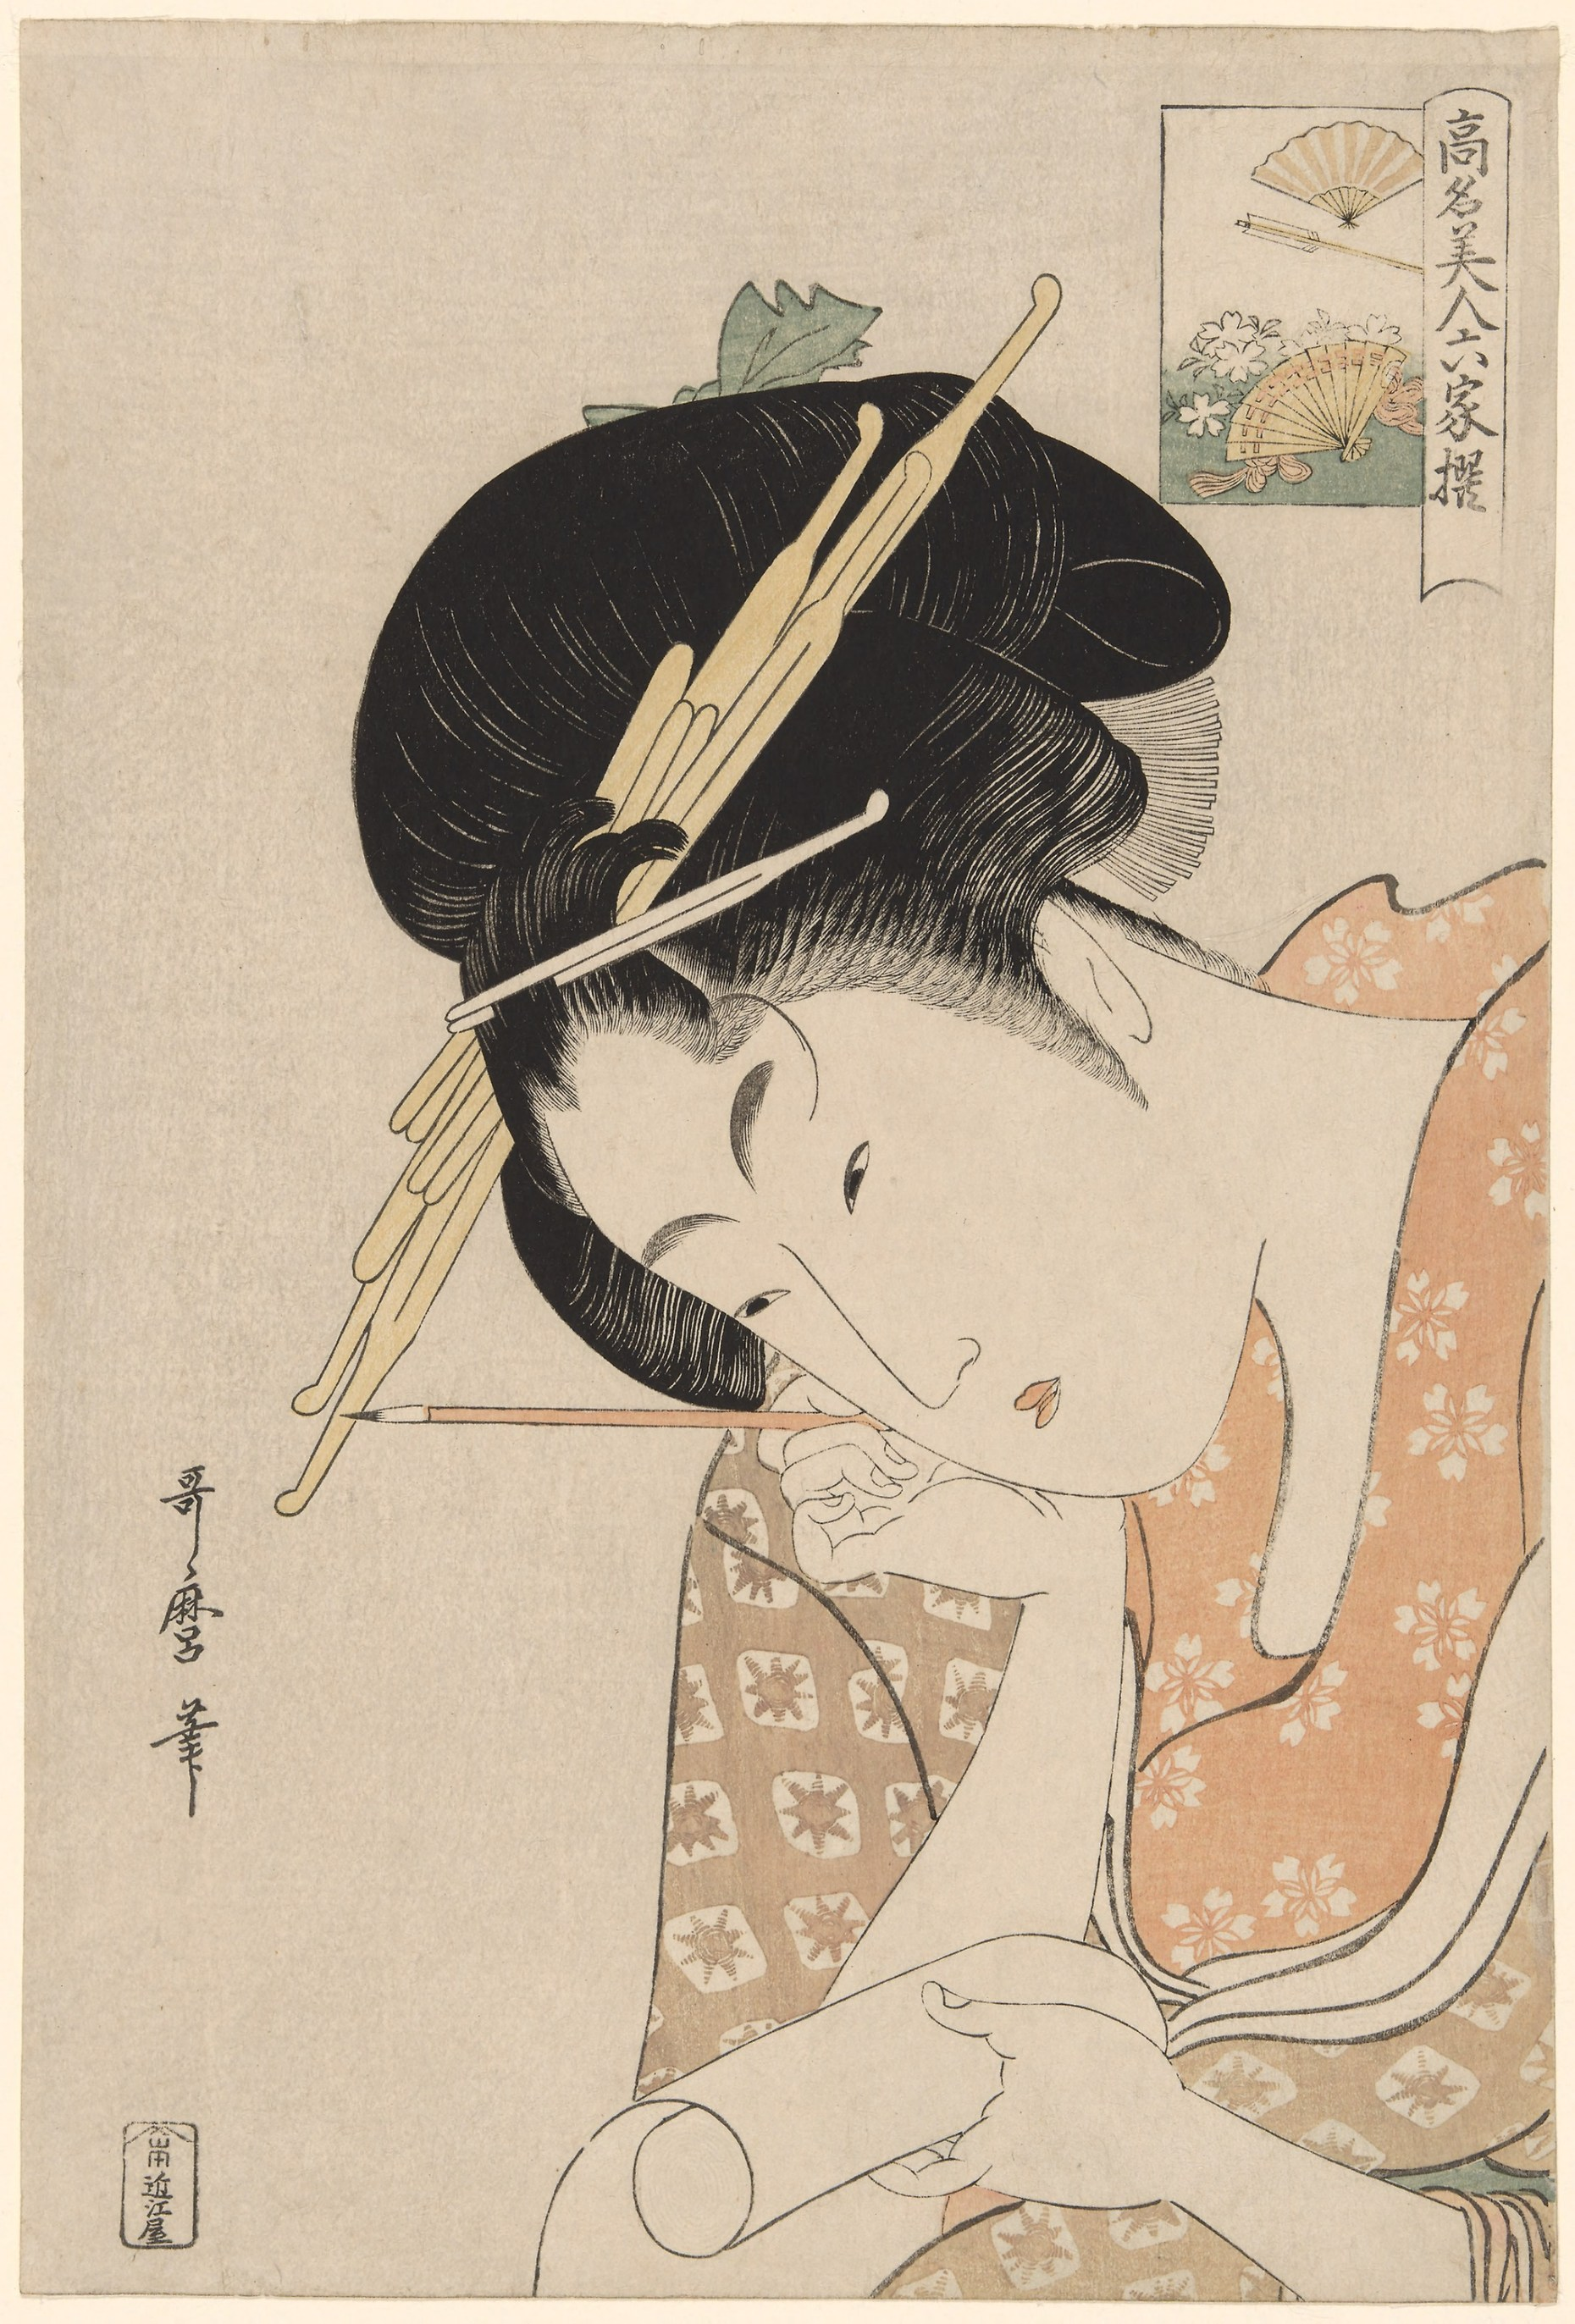 Kitagawa Utamaro, Hanaogi of the Ogiya, Renowned Beauties